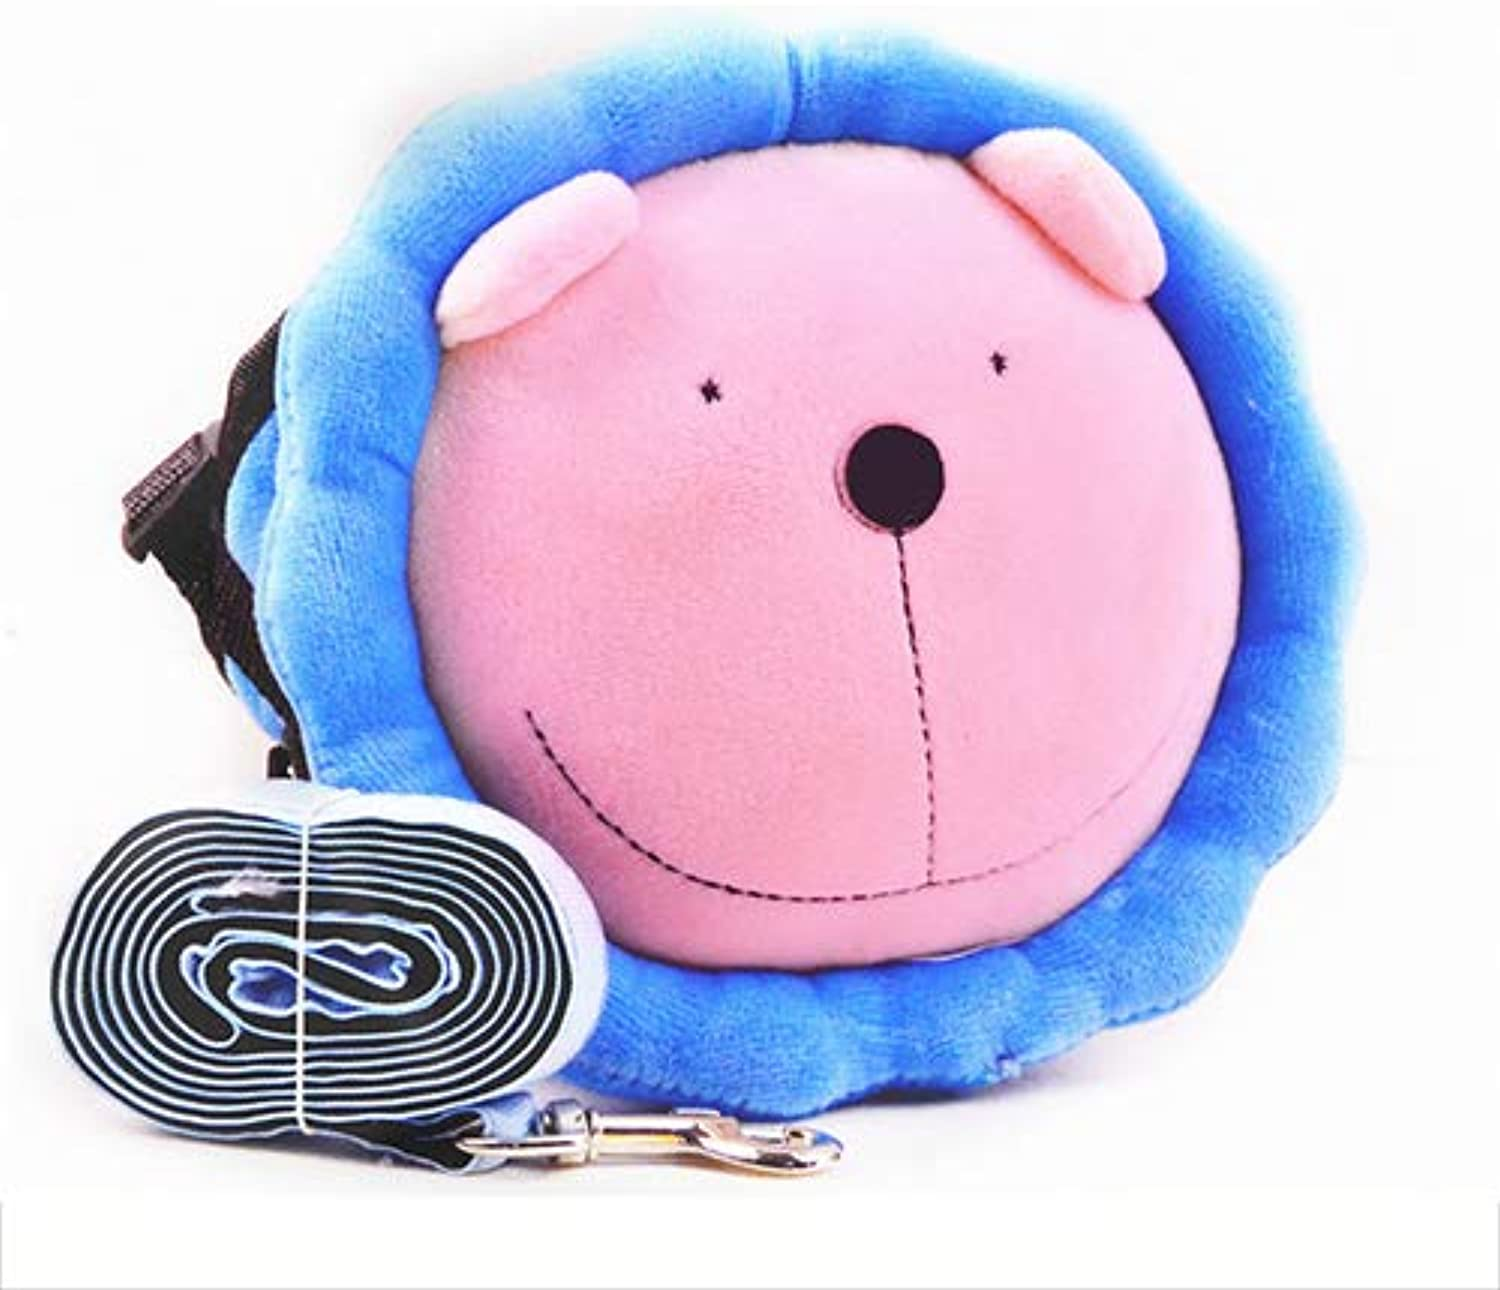 Cute Cartoon Dog Backpack Adjustable Saddle Bag Pack Carrier Harness for Walking Travelling Suitable for Small Dogs,S